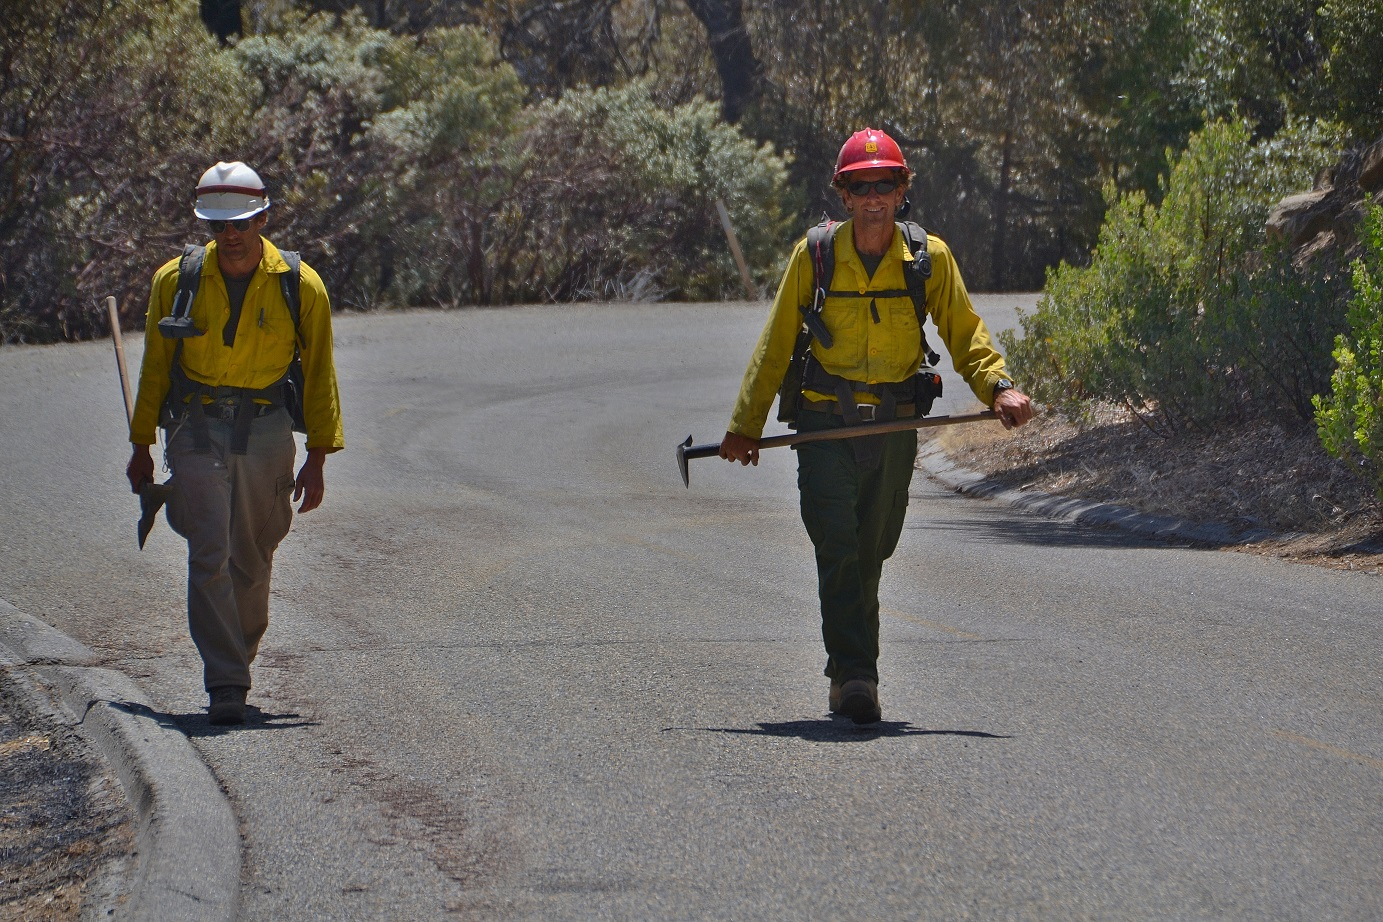 Firefighters heading for the fireline - photo by Gina Clugston